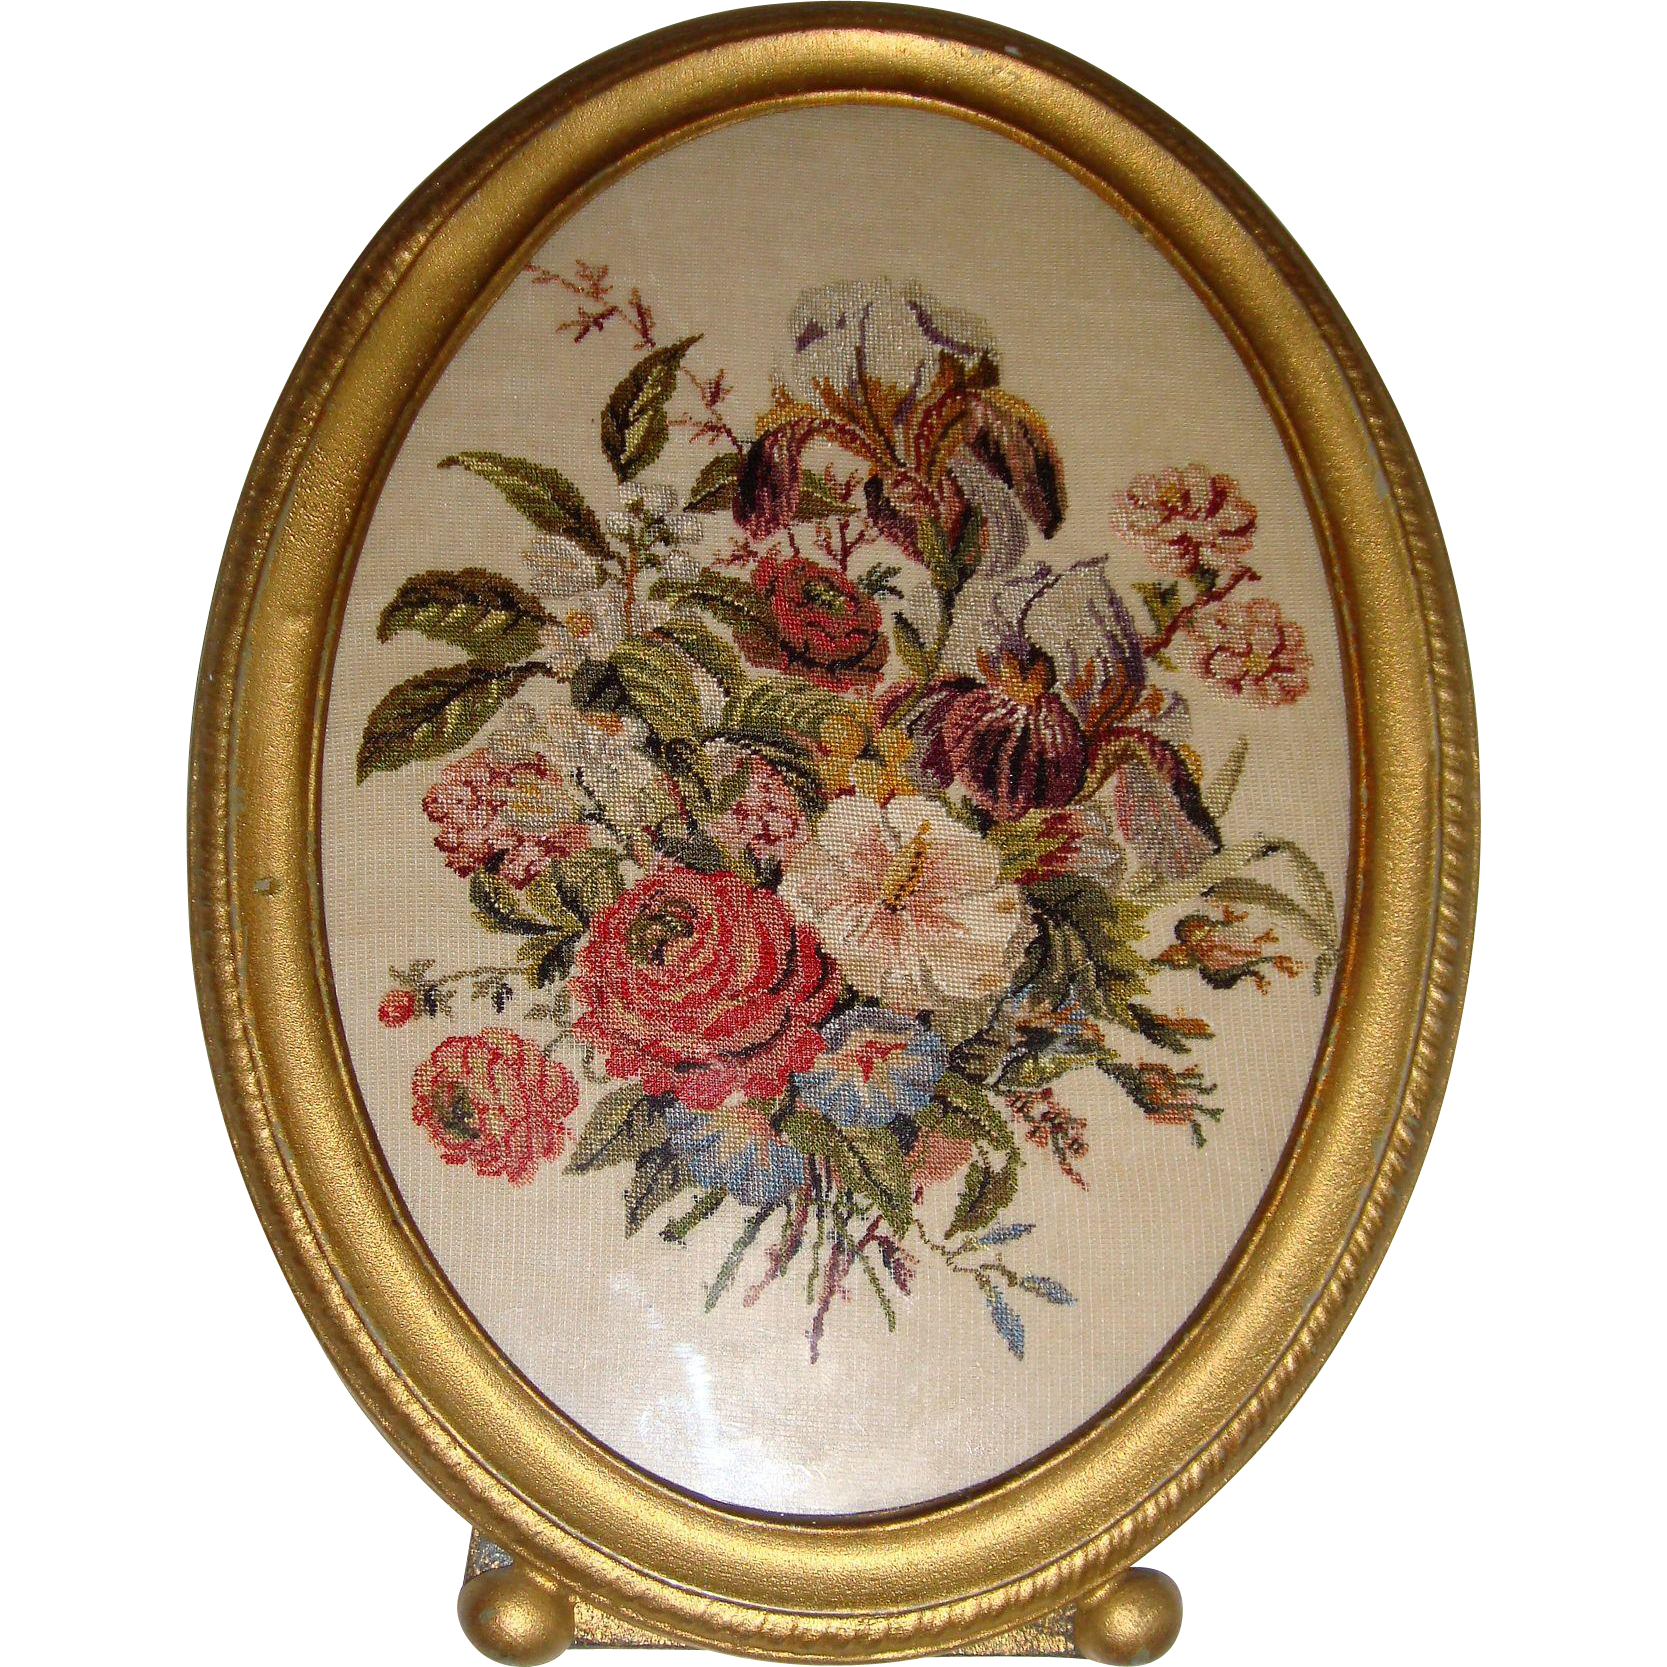 Petite point picture of flowers in oval frame